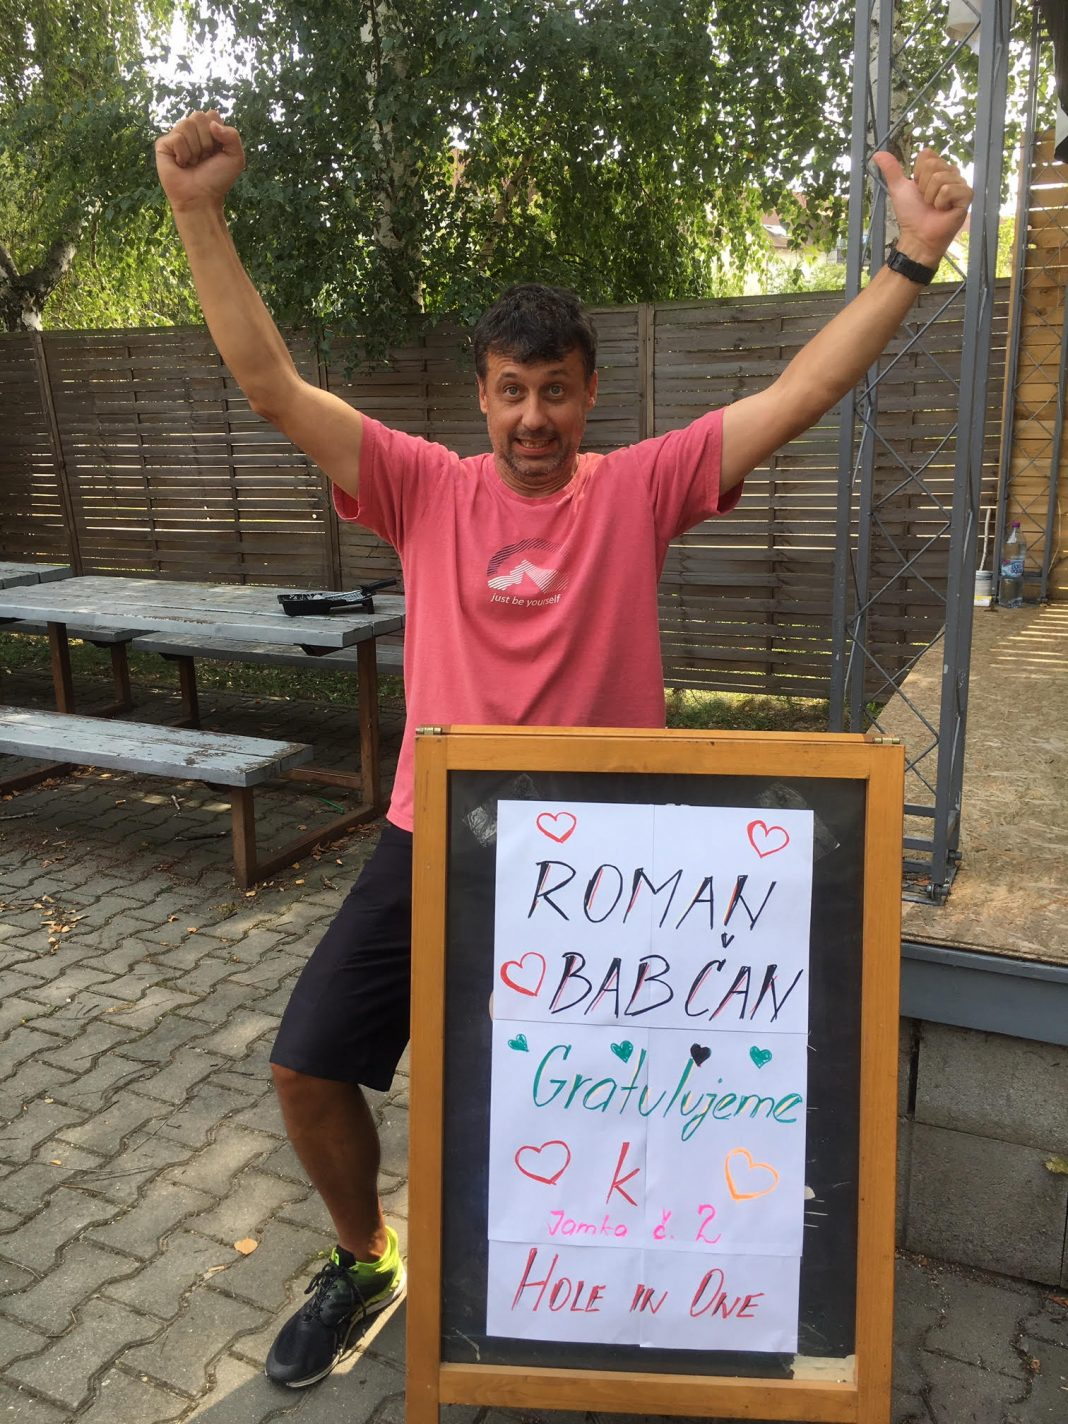 Roman Babčan Agama hole-in-one 2019